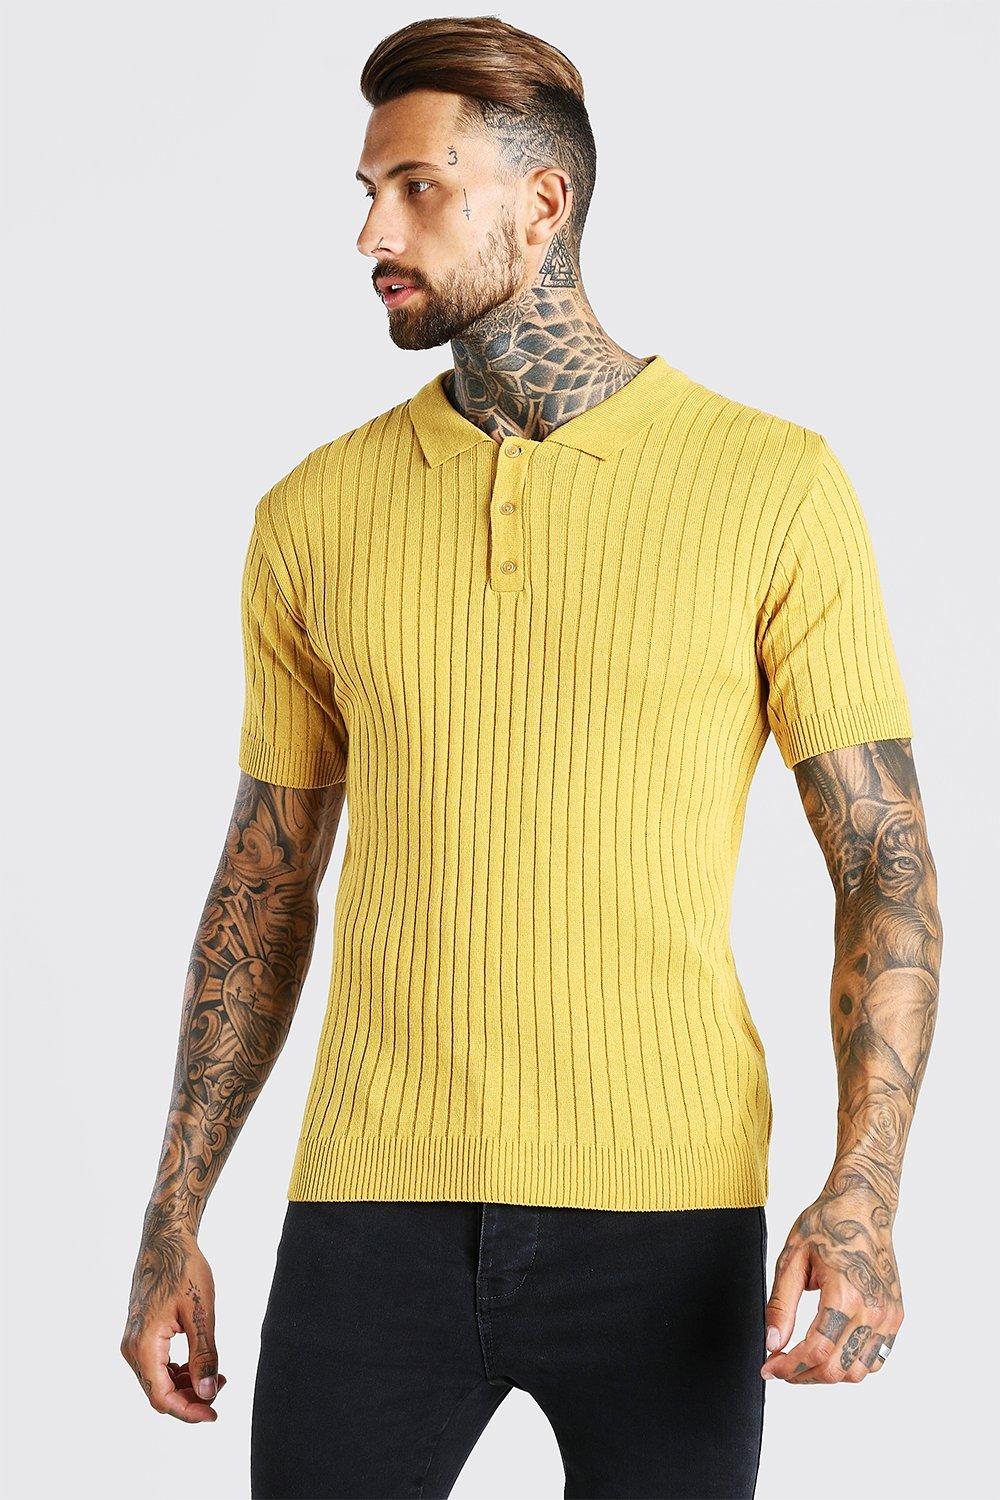 Mens Vintage Shirts – Casual, Dress, T-shirts, Polos Mens Muscle Fit Ribbed Knitted Polo - Yellow $10.00 AT vintagedancer.com